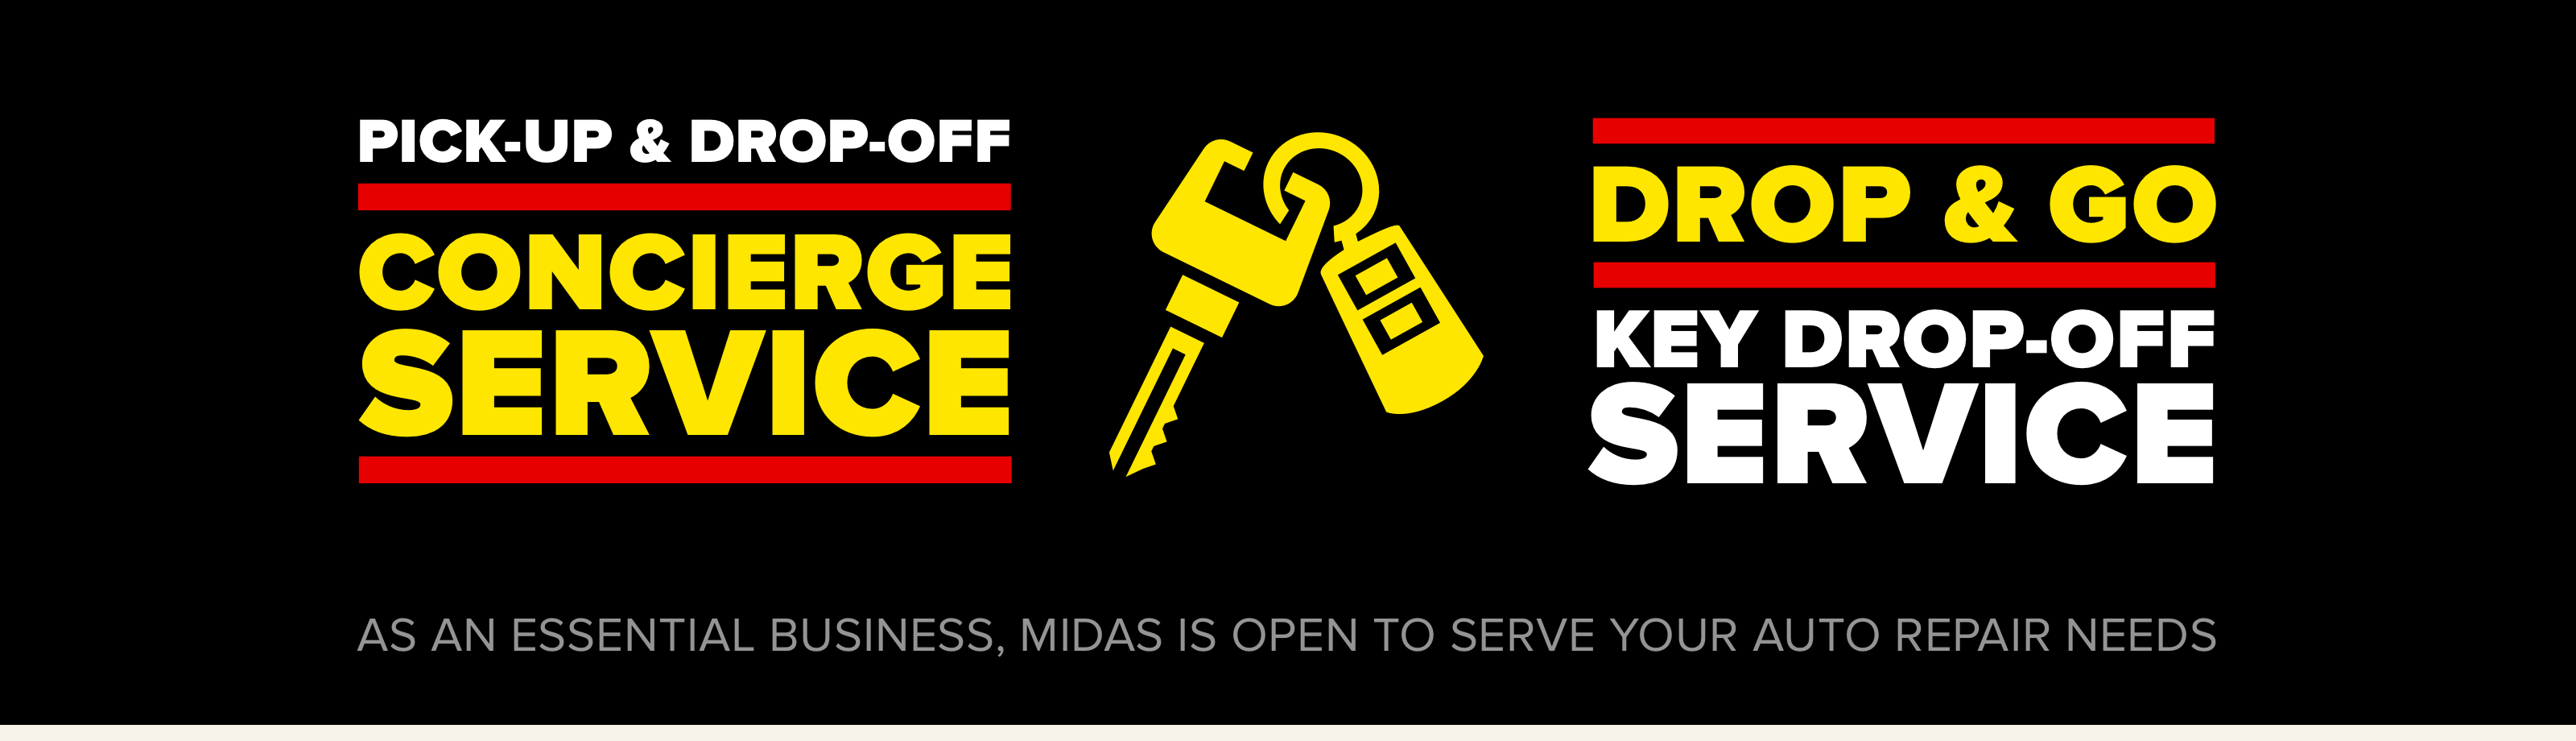 Pick-up & drop-off concierge service. Drop & go key drop-off service. As an essential business, Midas is open to serve your auto repair needs.